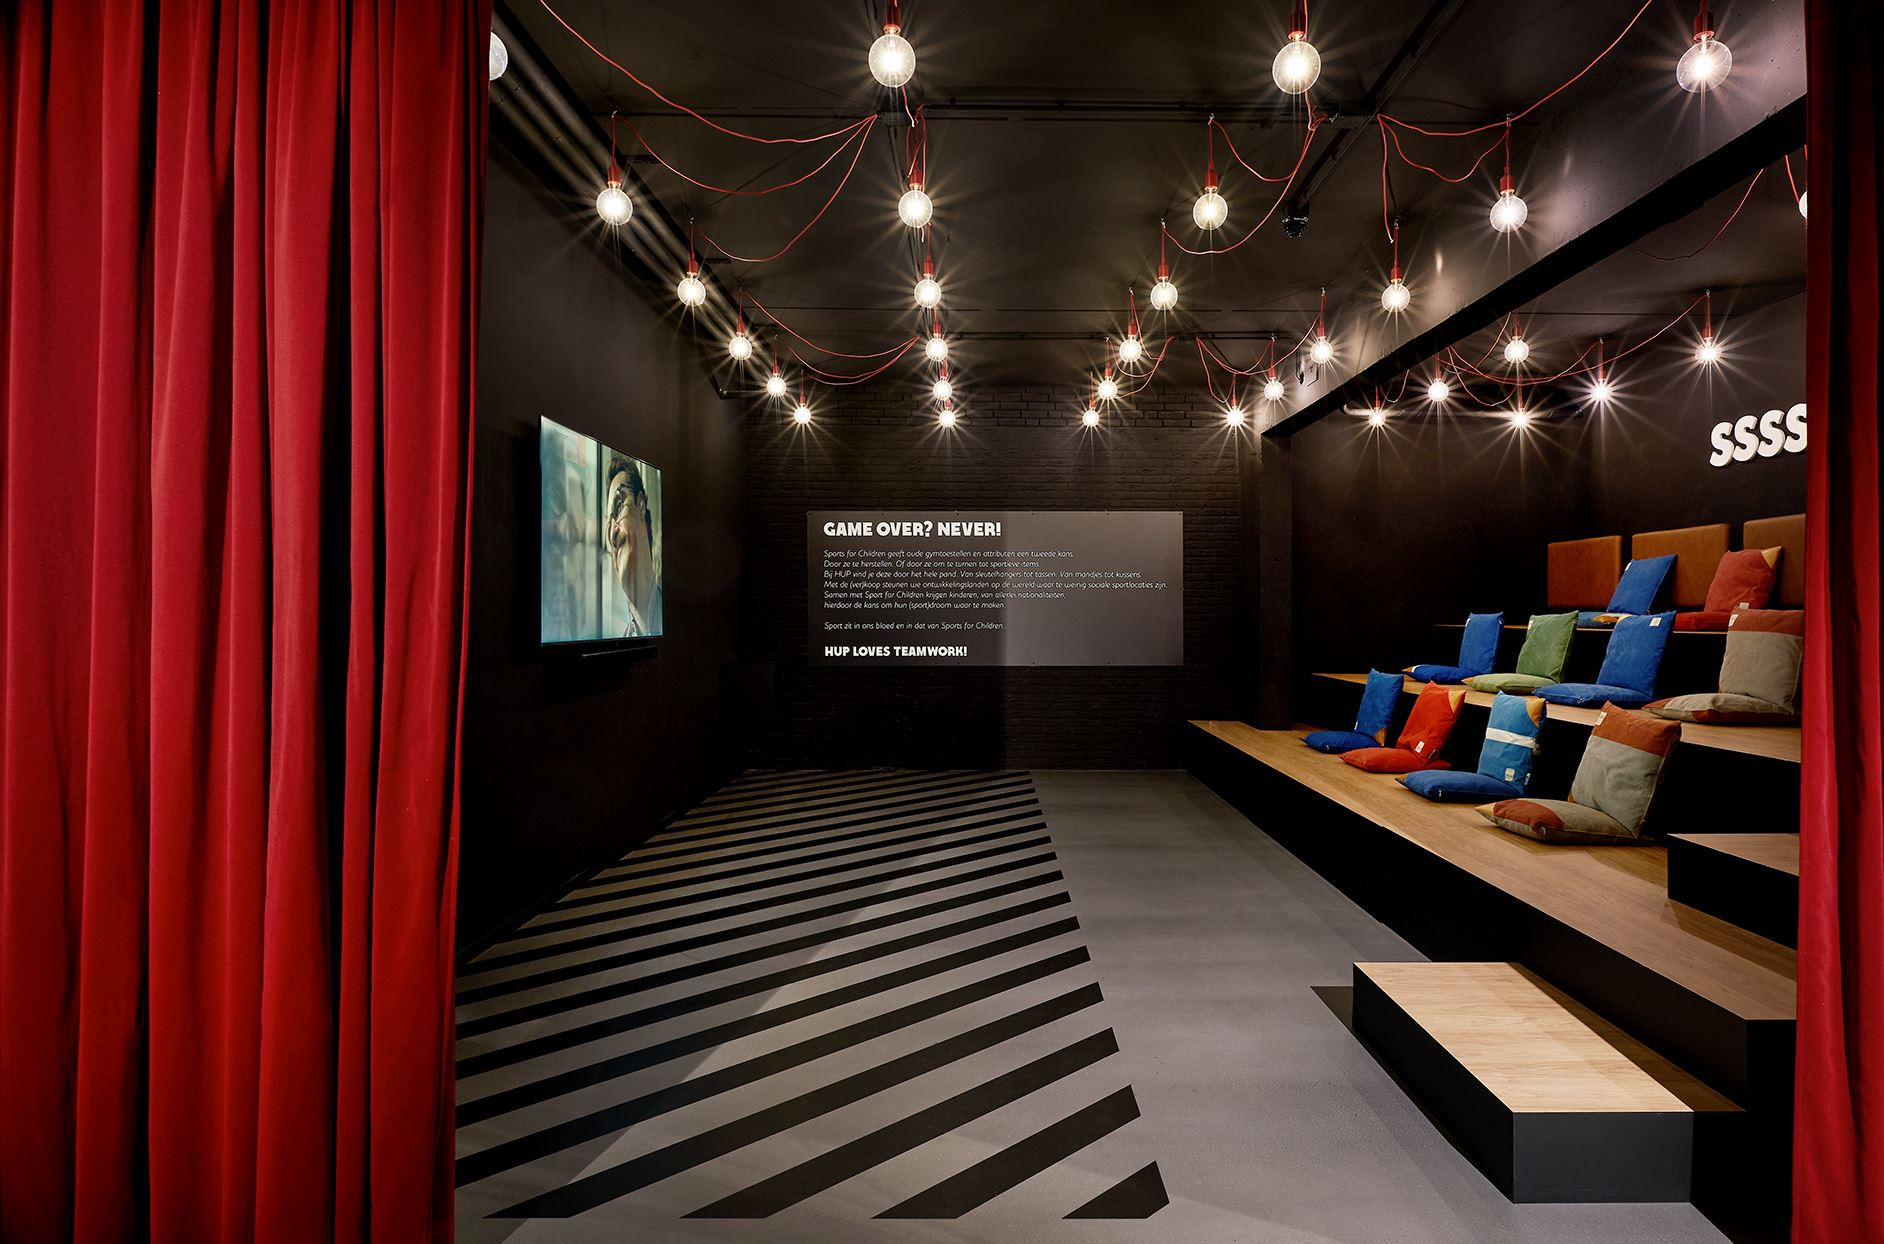 hup-hotel-cinema-bioscoop